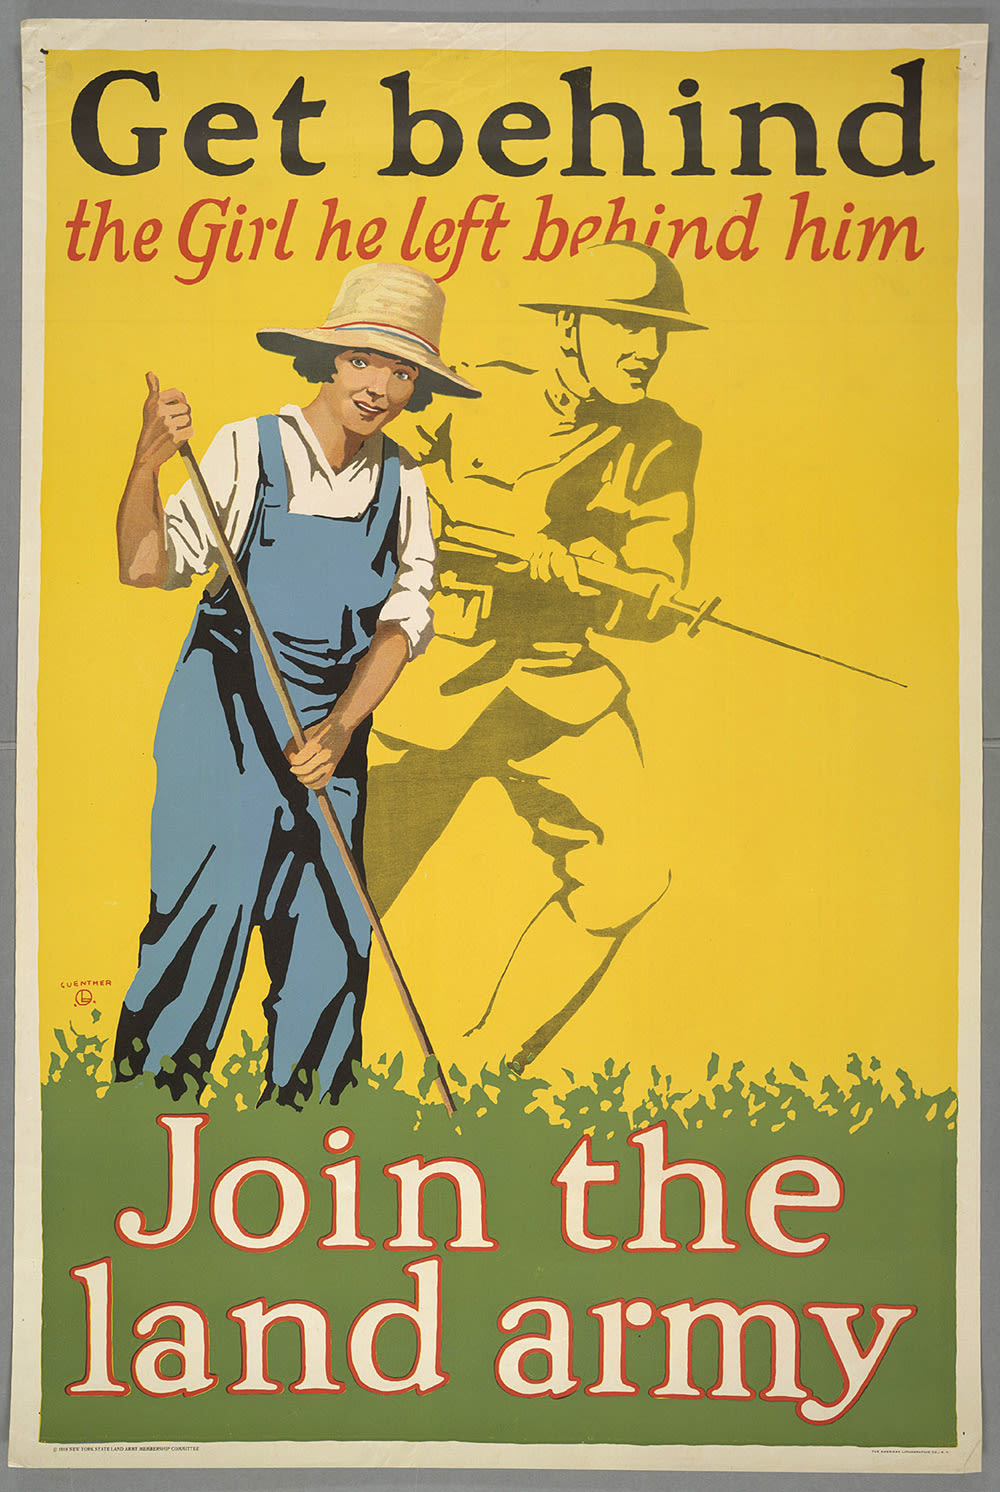 colour poster with a yellow background, a woman working on green grass with a soldier's silhouette behind her and the words 'Get behind the girl he left behind him join the land army'